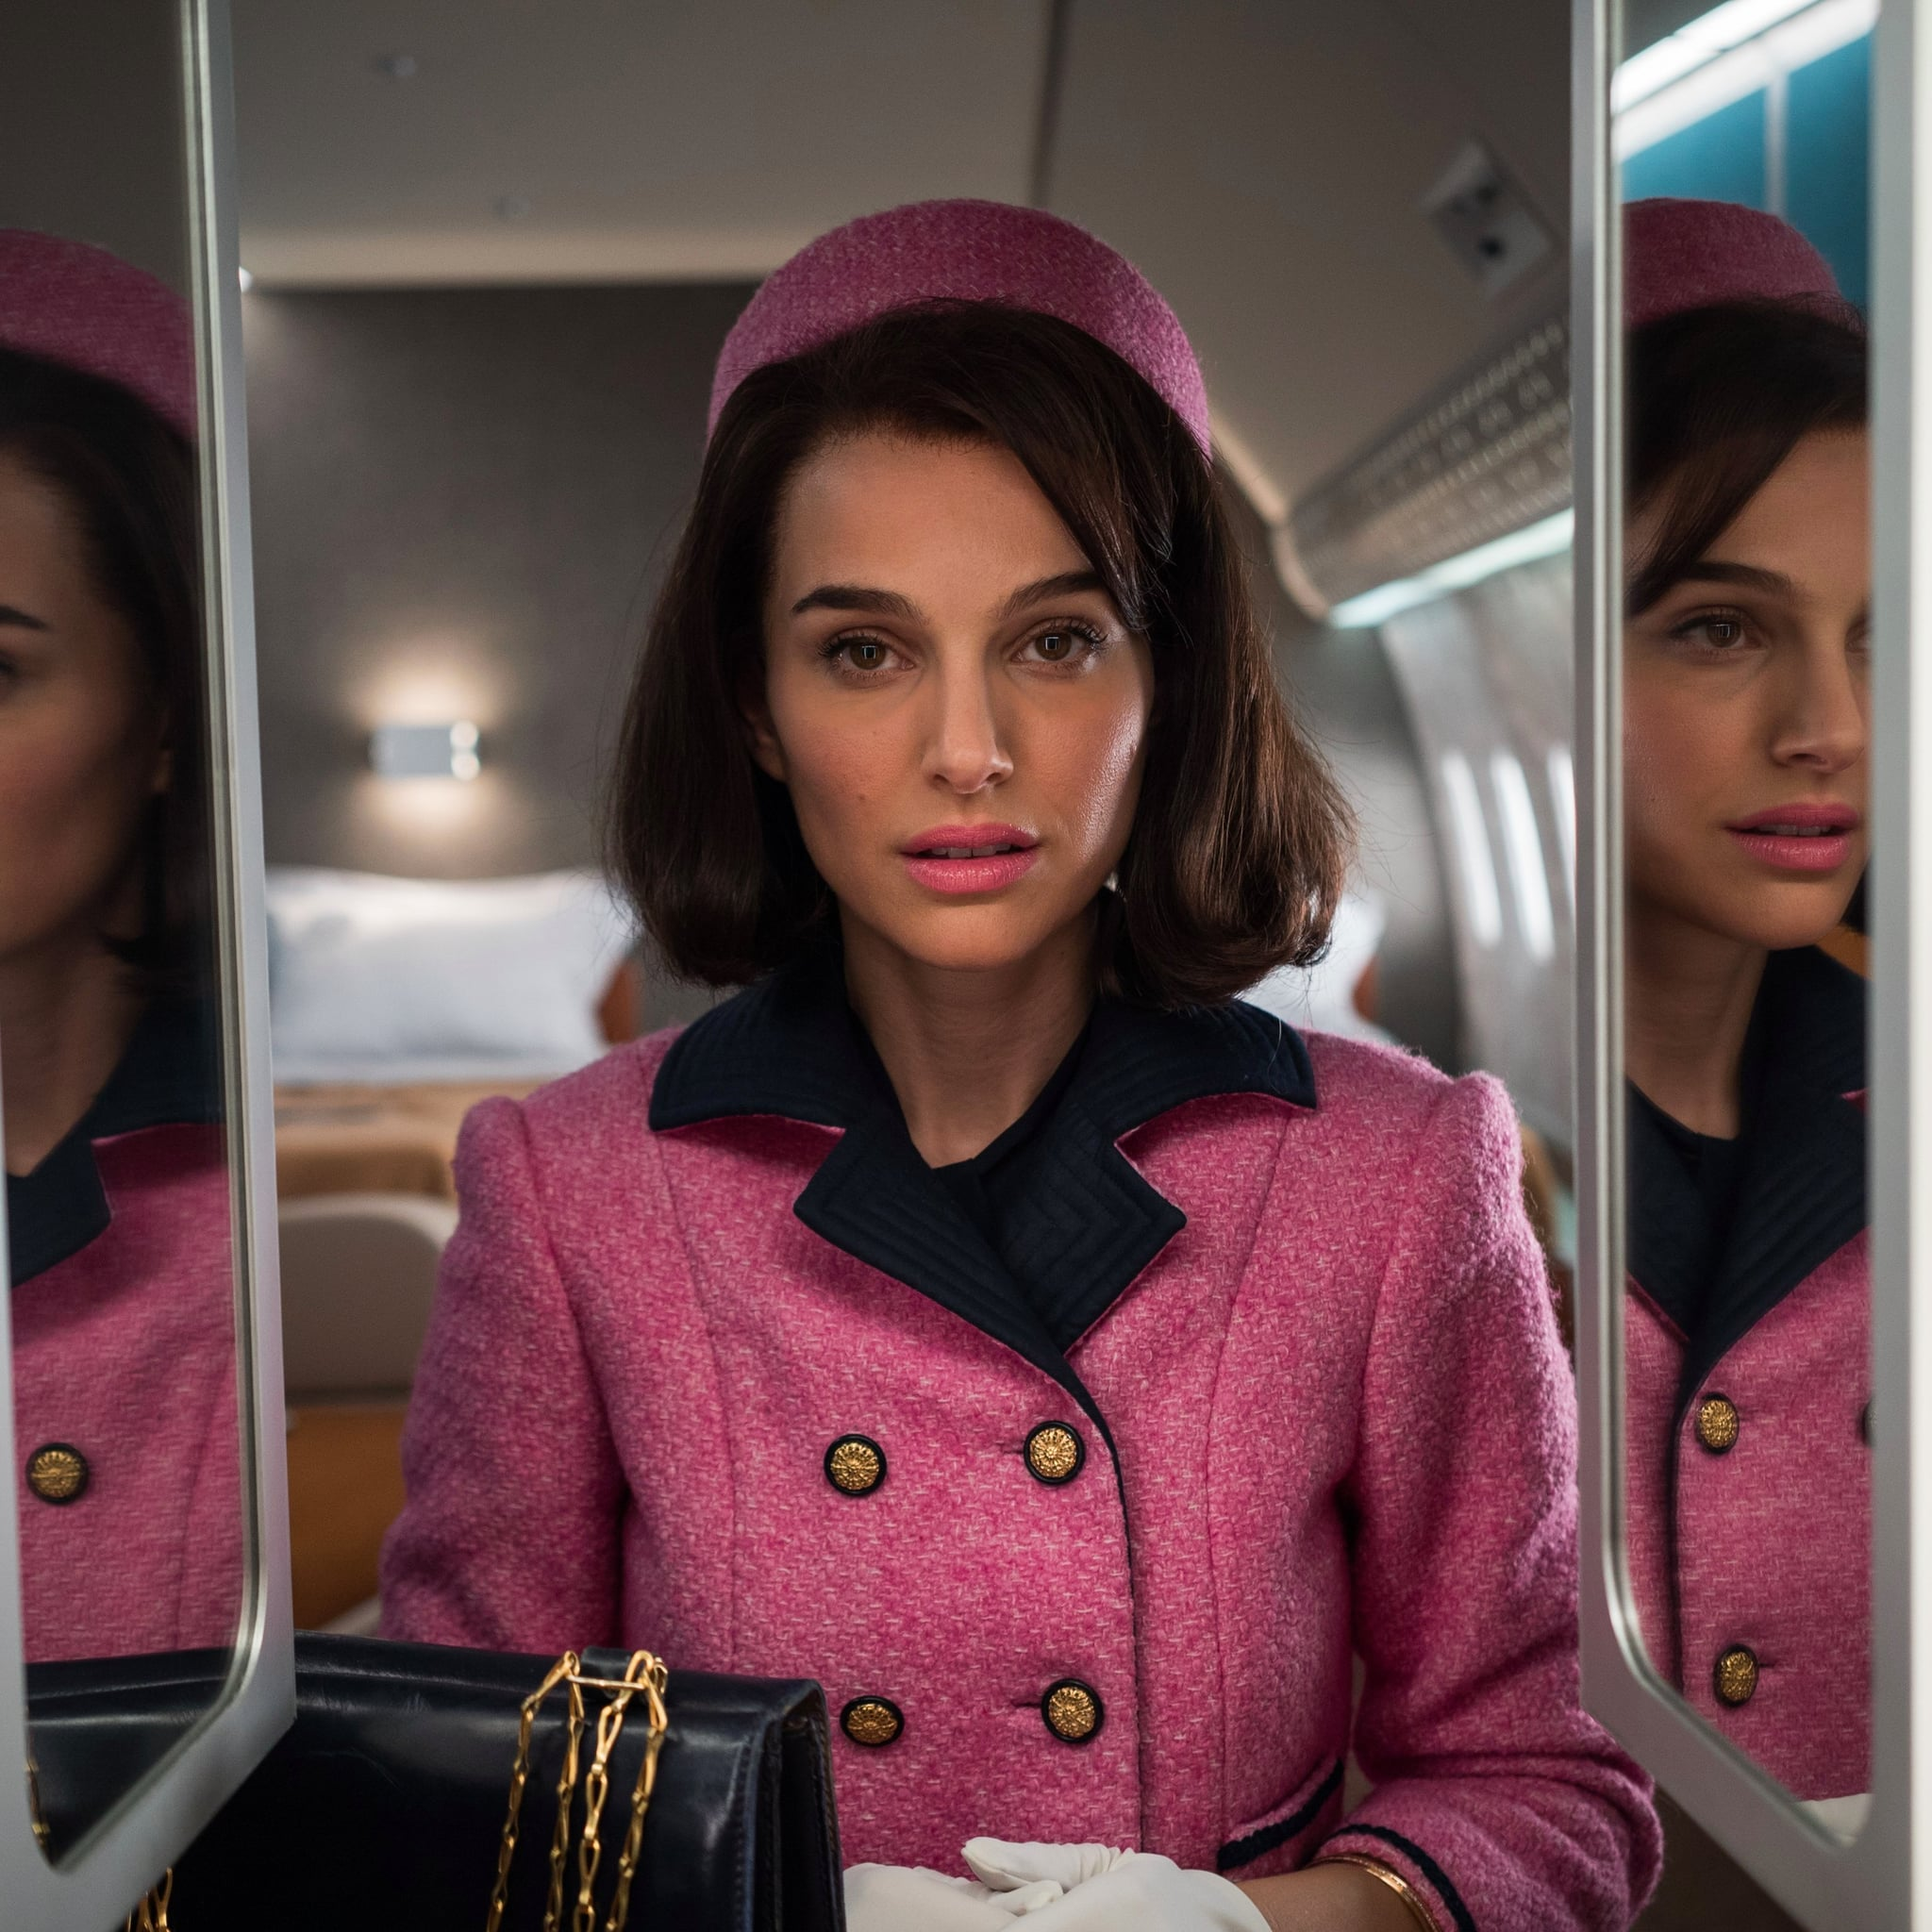 natalie portman as jackie kennedy style pictures popsugar fashion